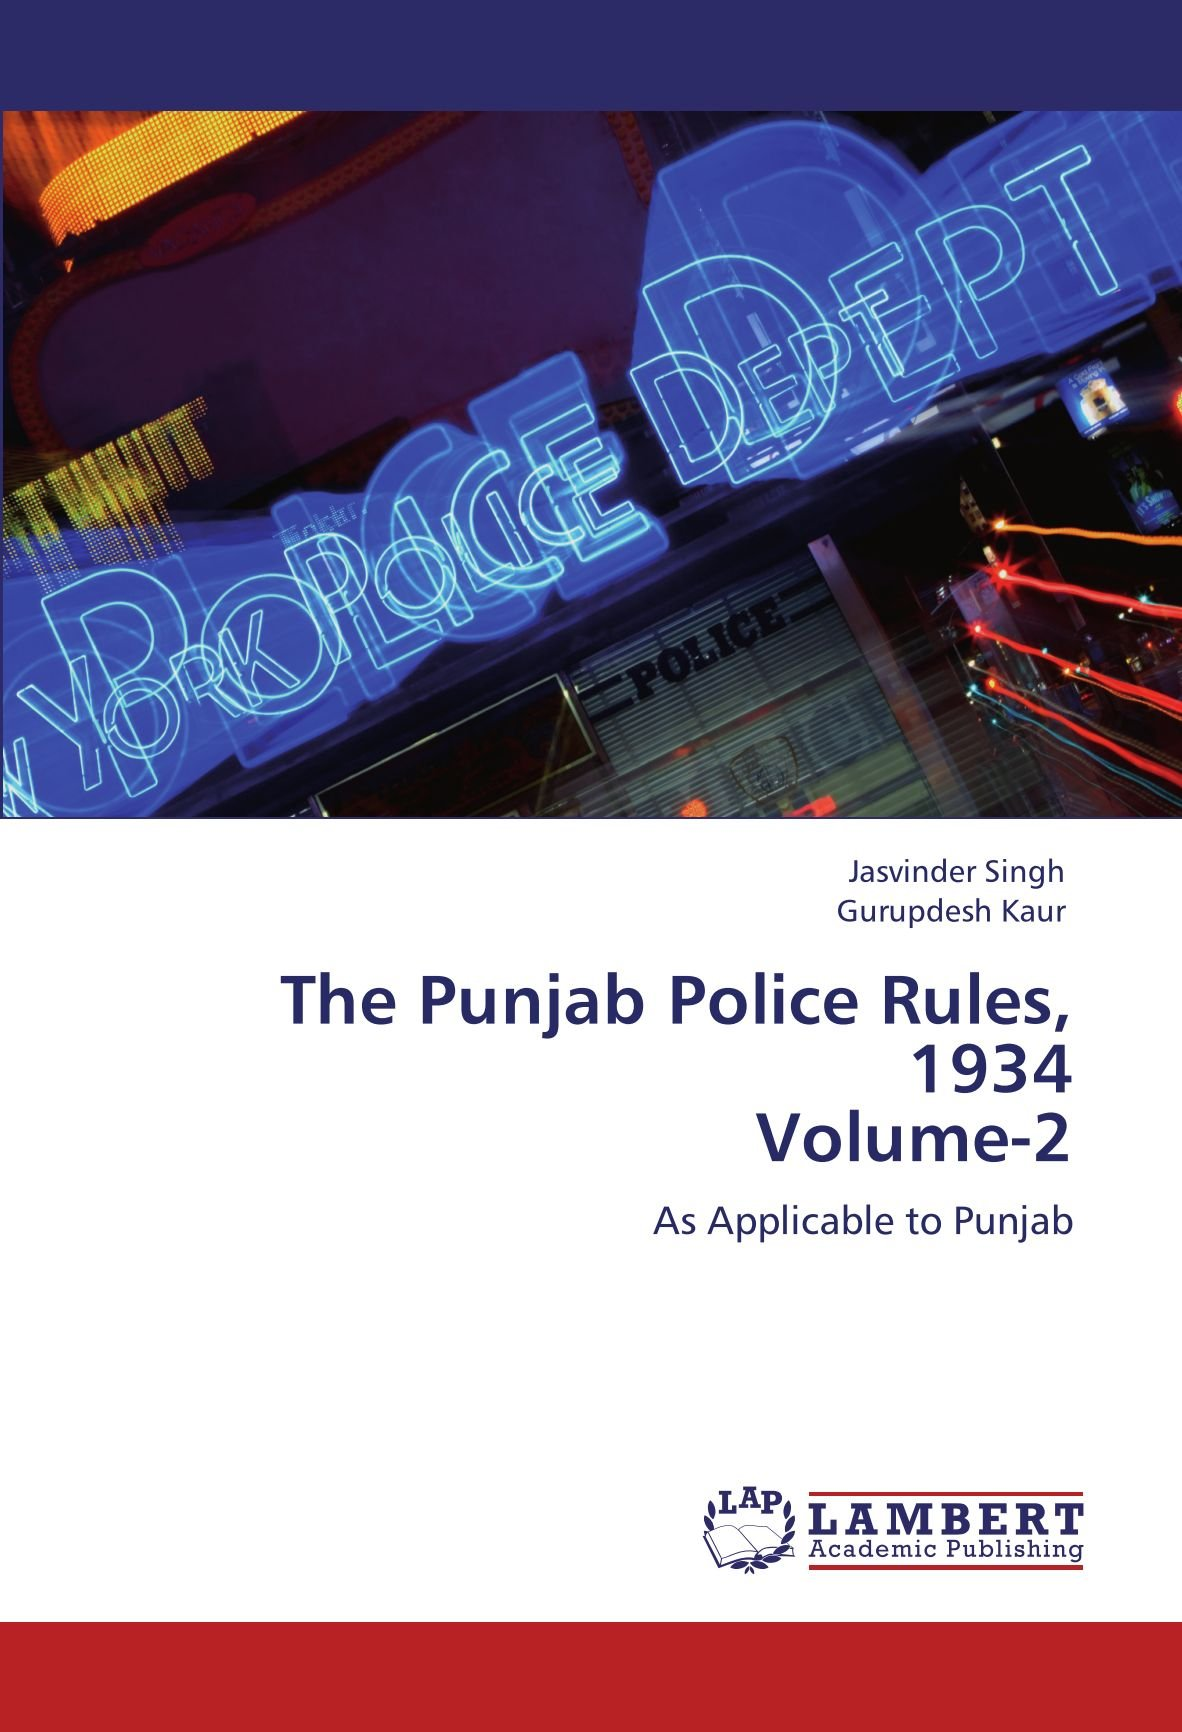 Buy The Punjab Police Rules, 1934 Volume-2: As Applicable to Punjab ...